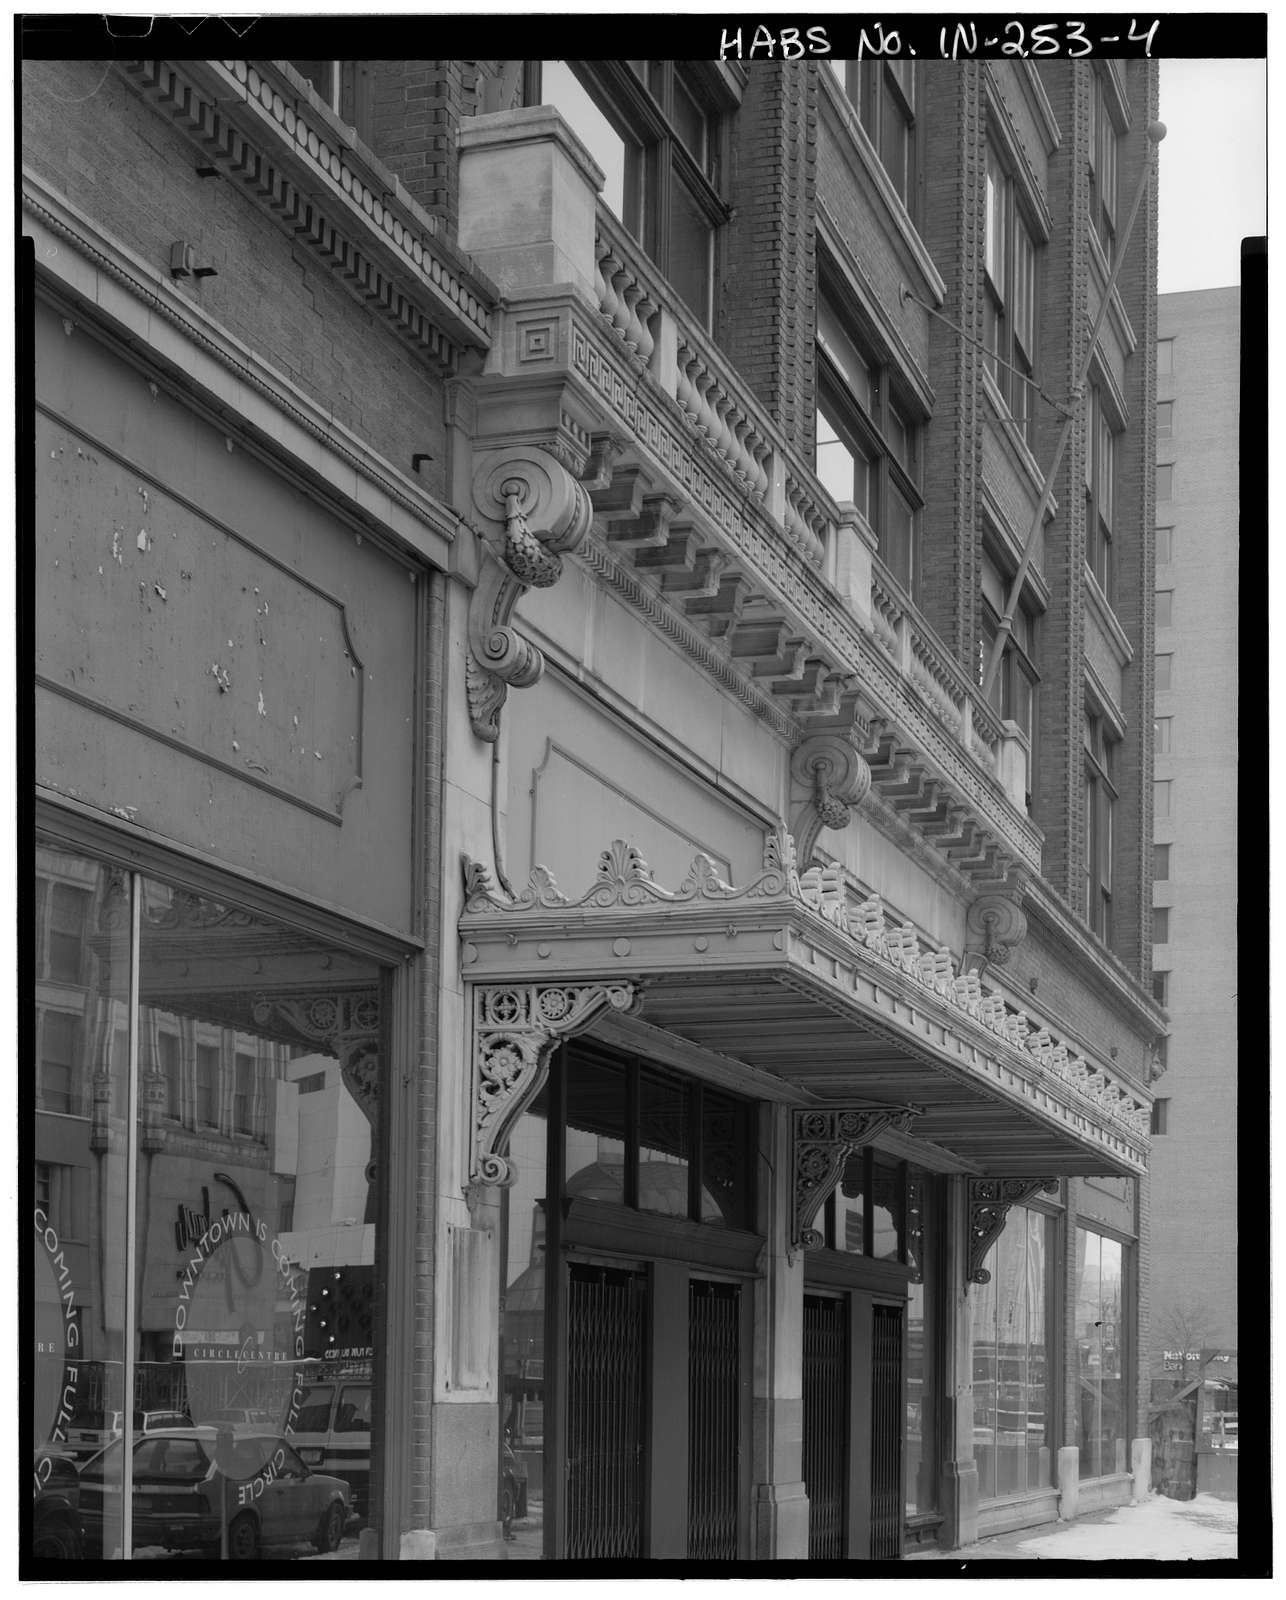 L. S. Ayres & Company Department Store, 1 West Washington Street, Indianapolis, Marion County, IN